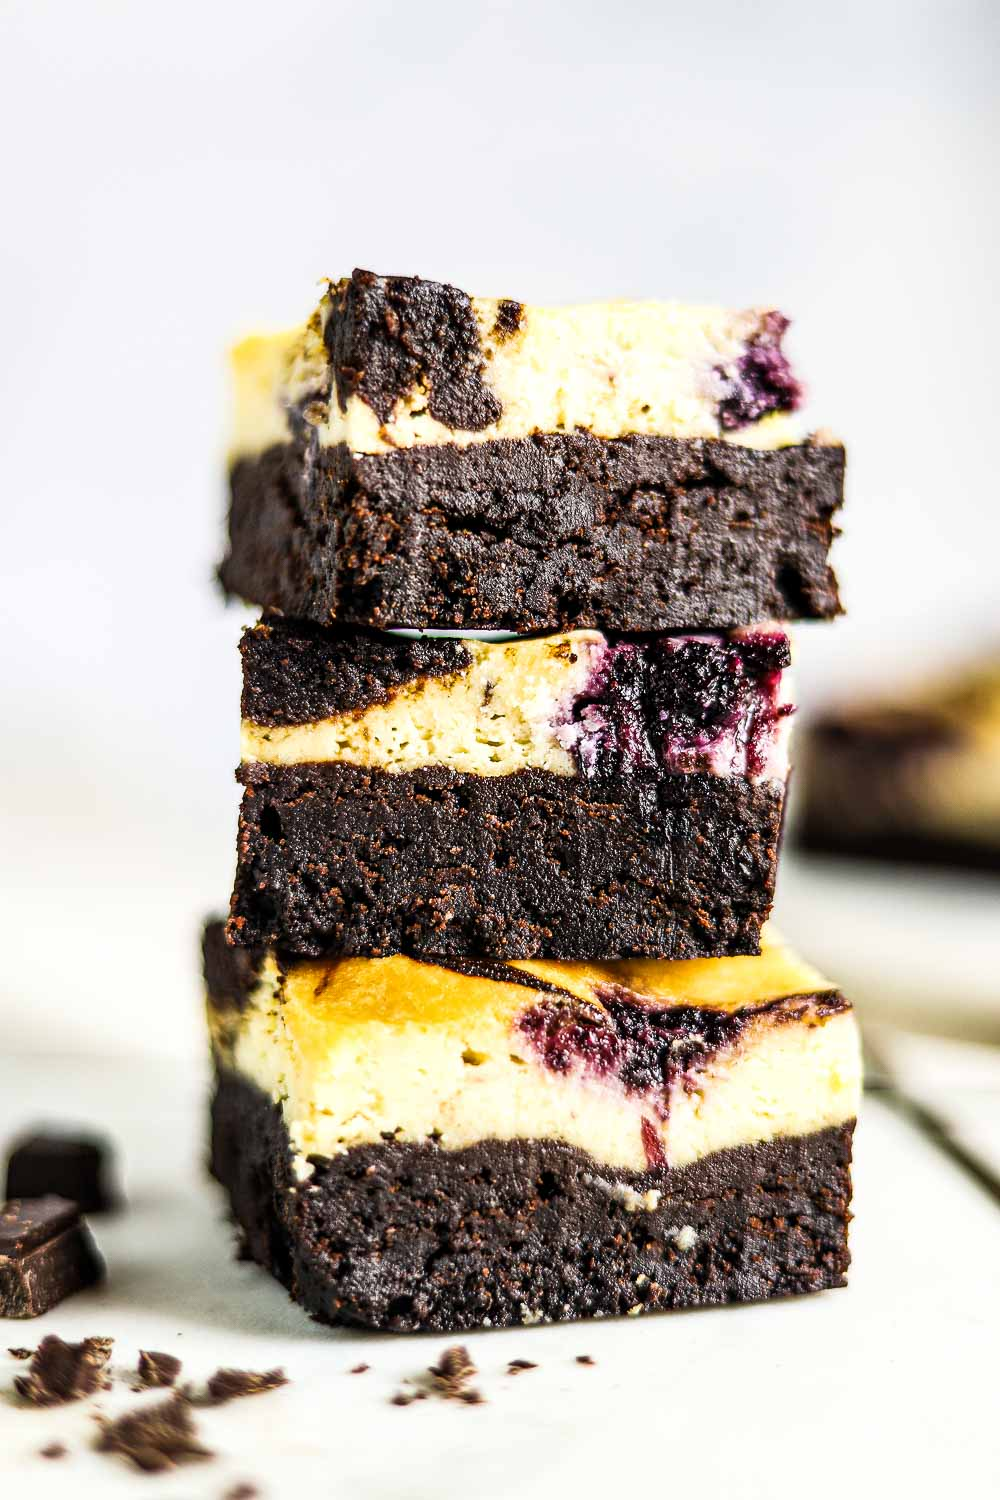 These Blueberry Swirl Cheesecake Brownies are so delicious that they are going to make your head spin! It is a decadent layered dessert that starts with the perfect brownie and topped with a layer of blueberry swirl cheesecake!